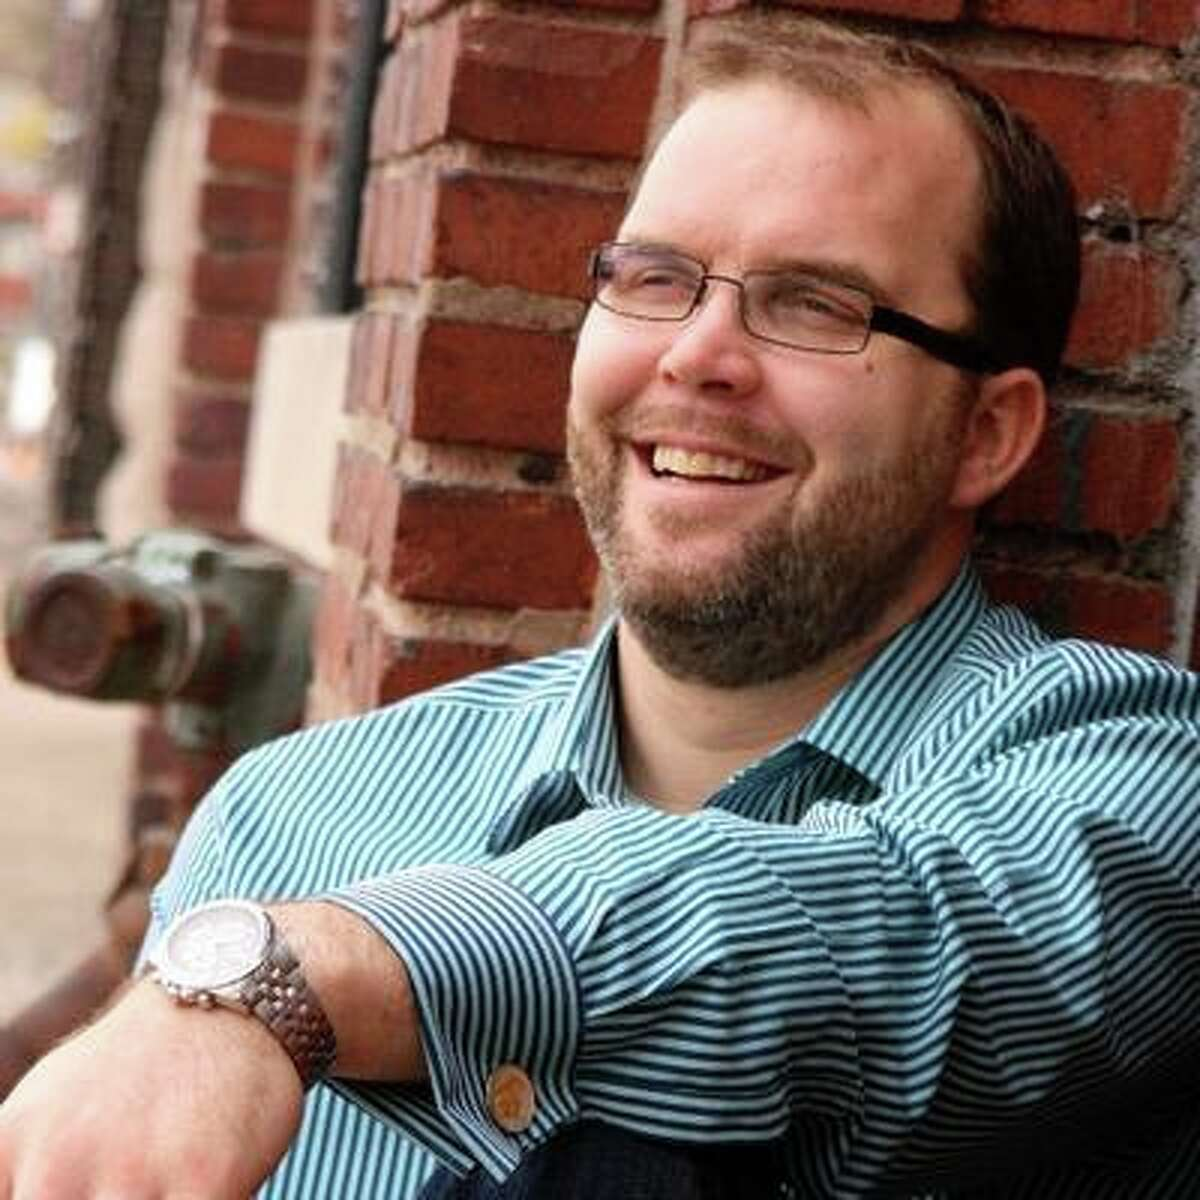 Matthew Schmidt is an associate professor of national security and political science at the University of New Haven.